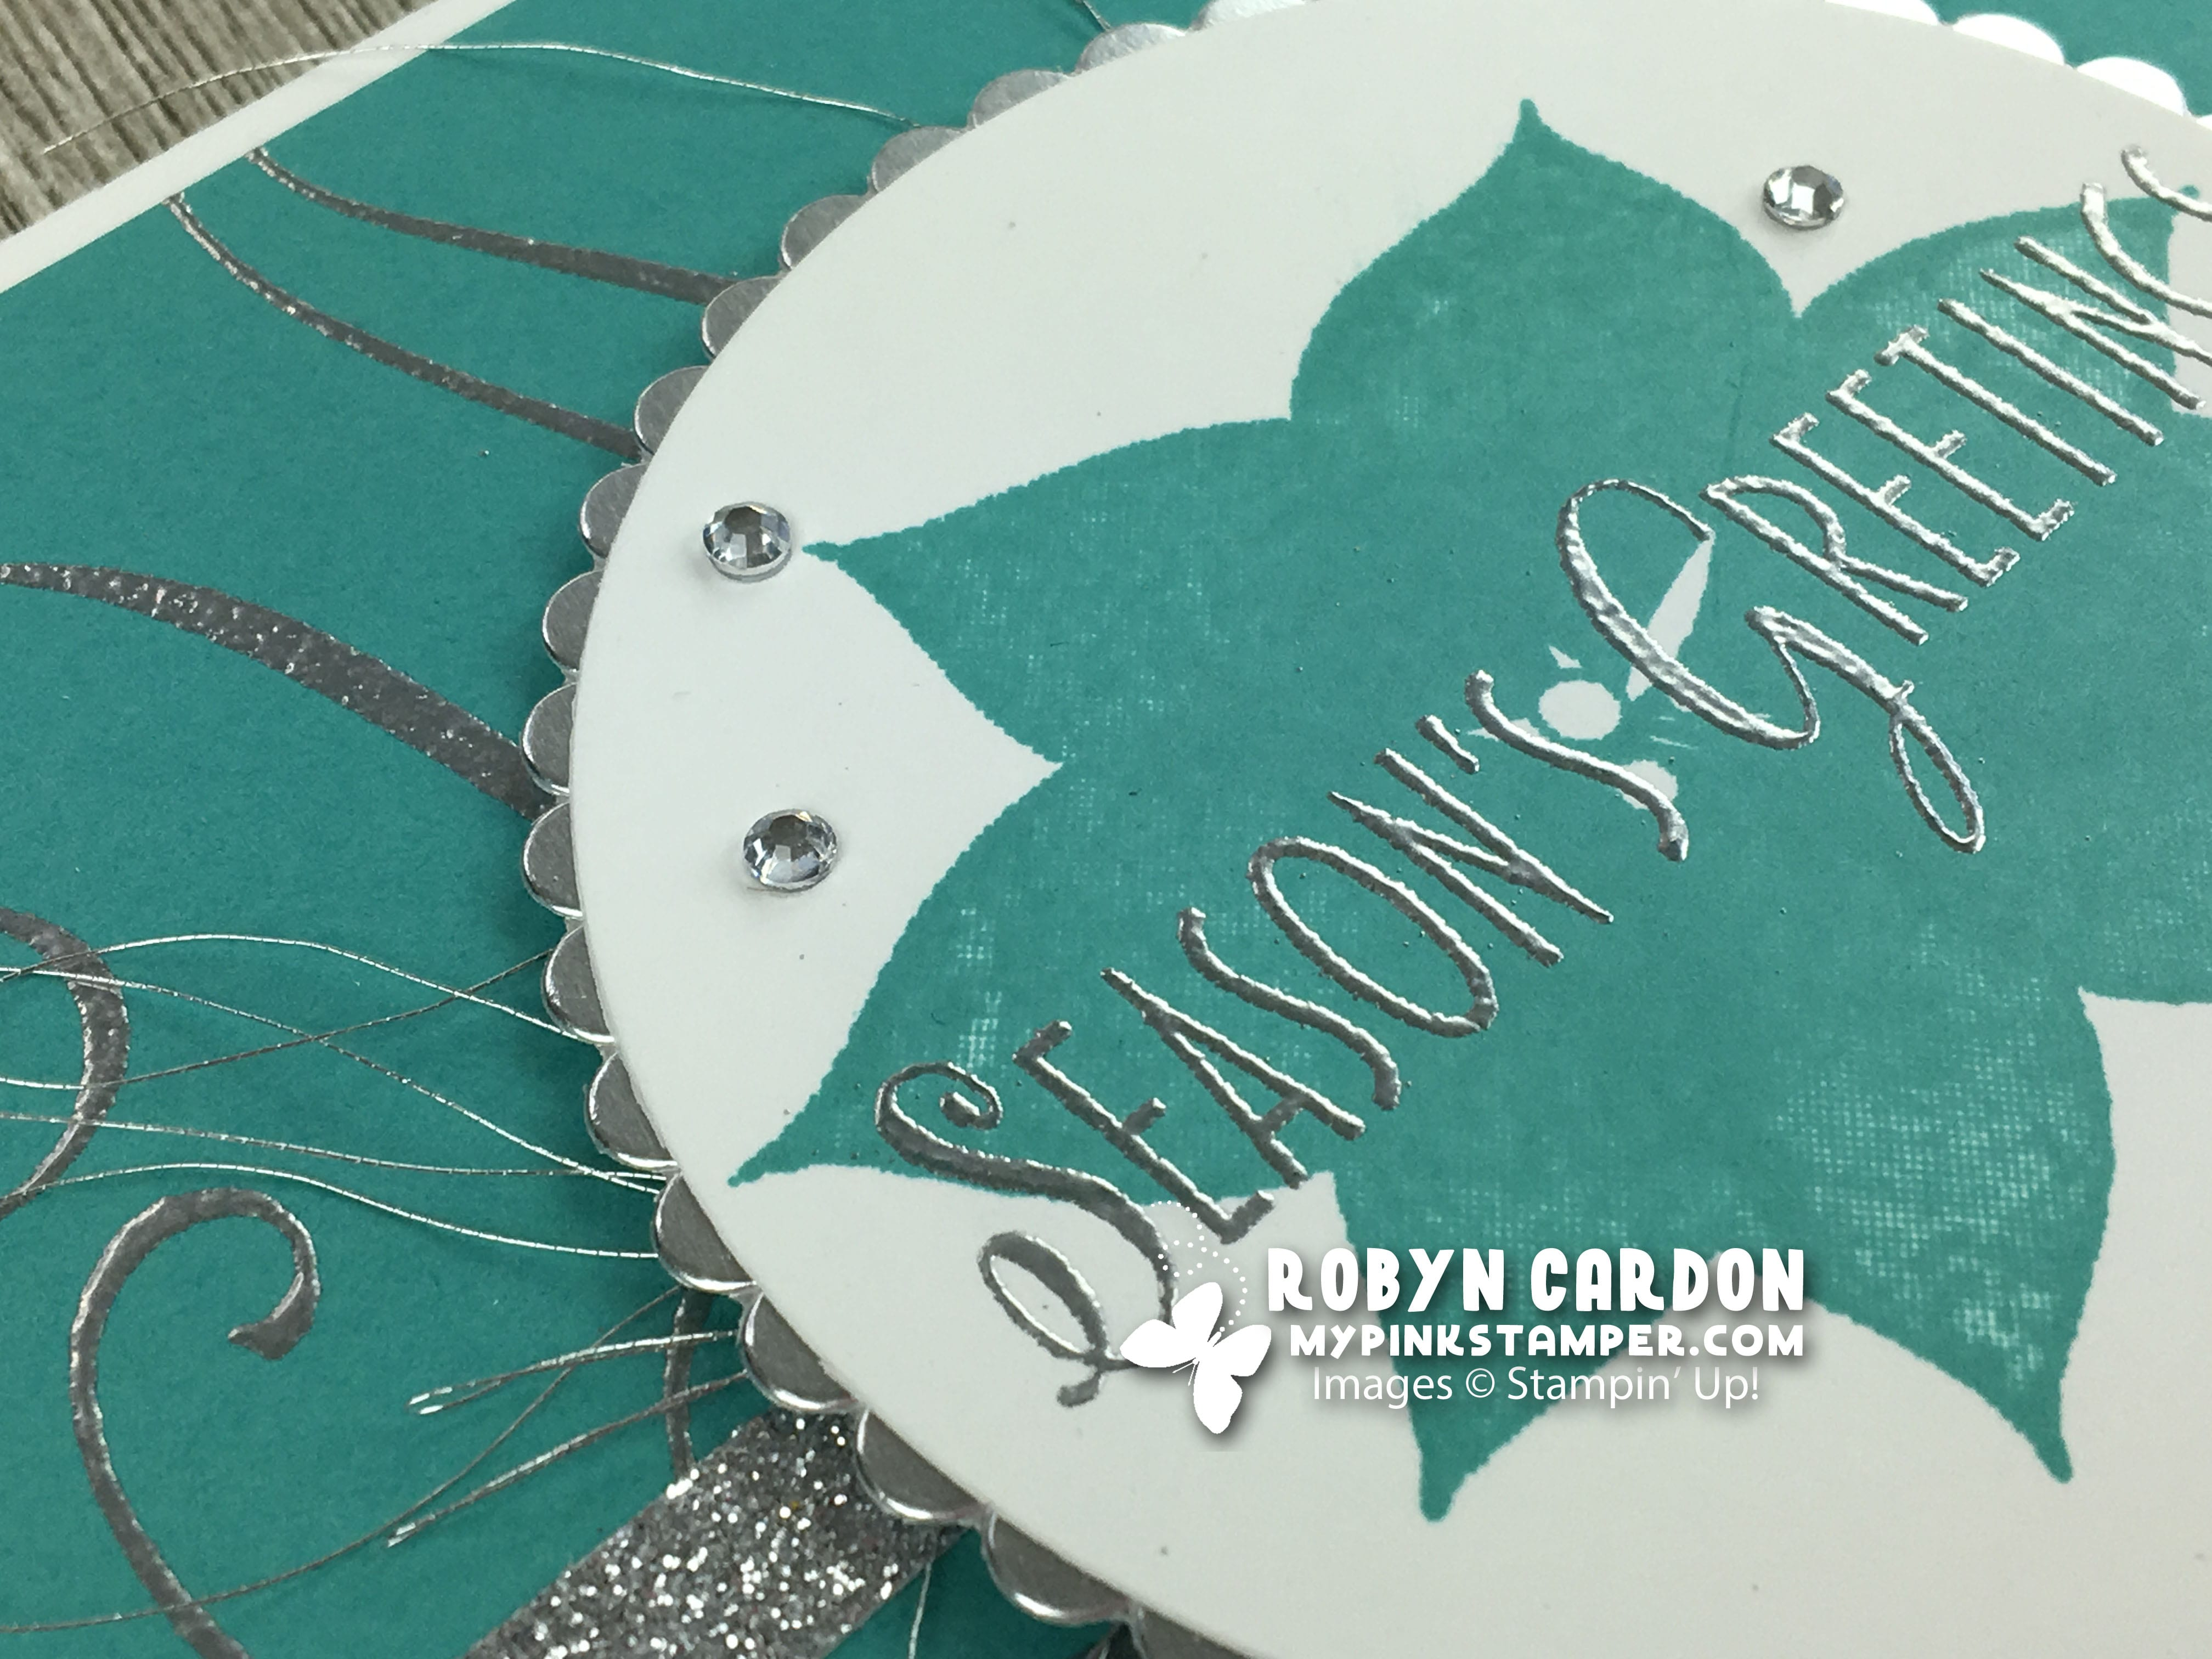 Episode 651 – Stampin' Up! Stylish Christmas Heat Embossed Card